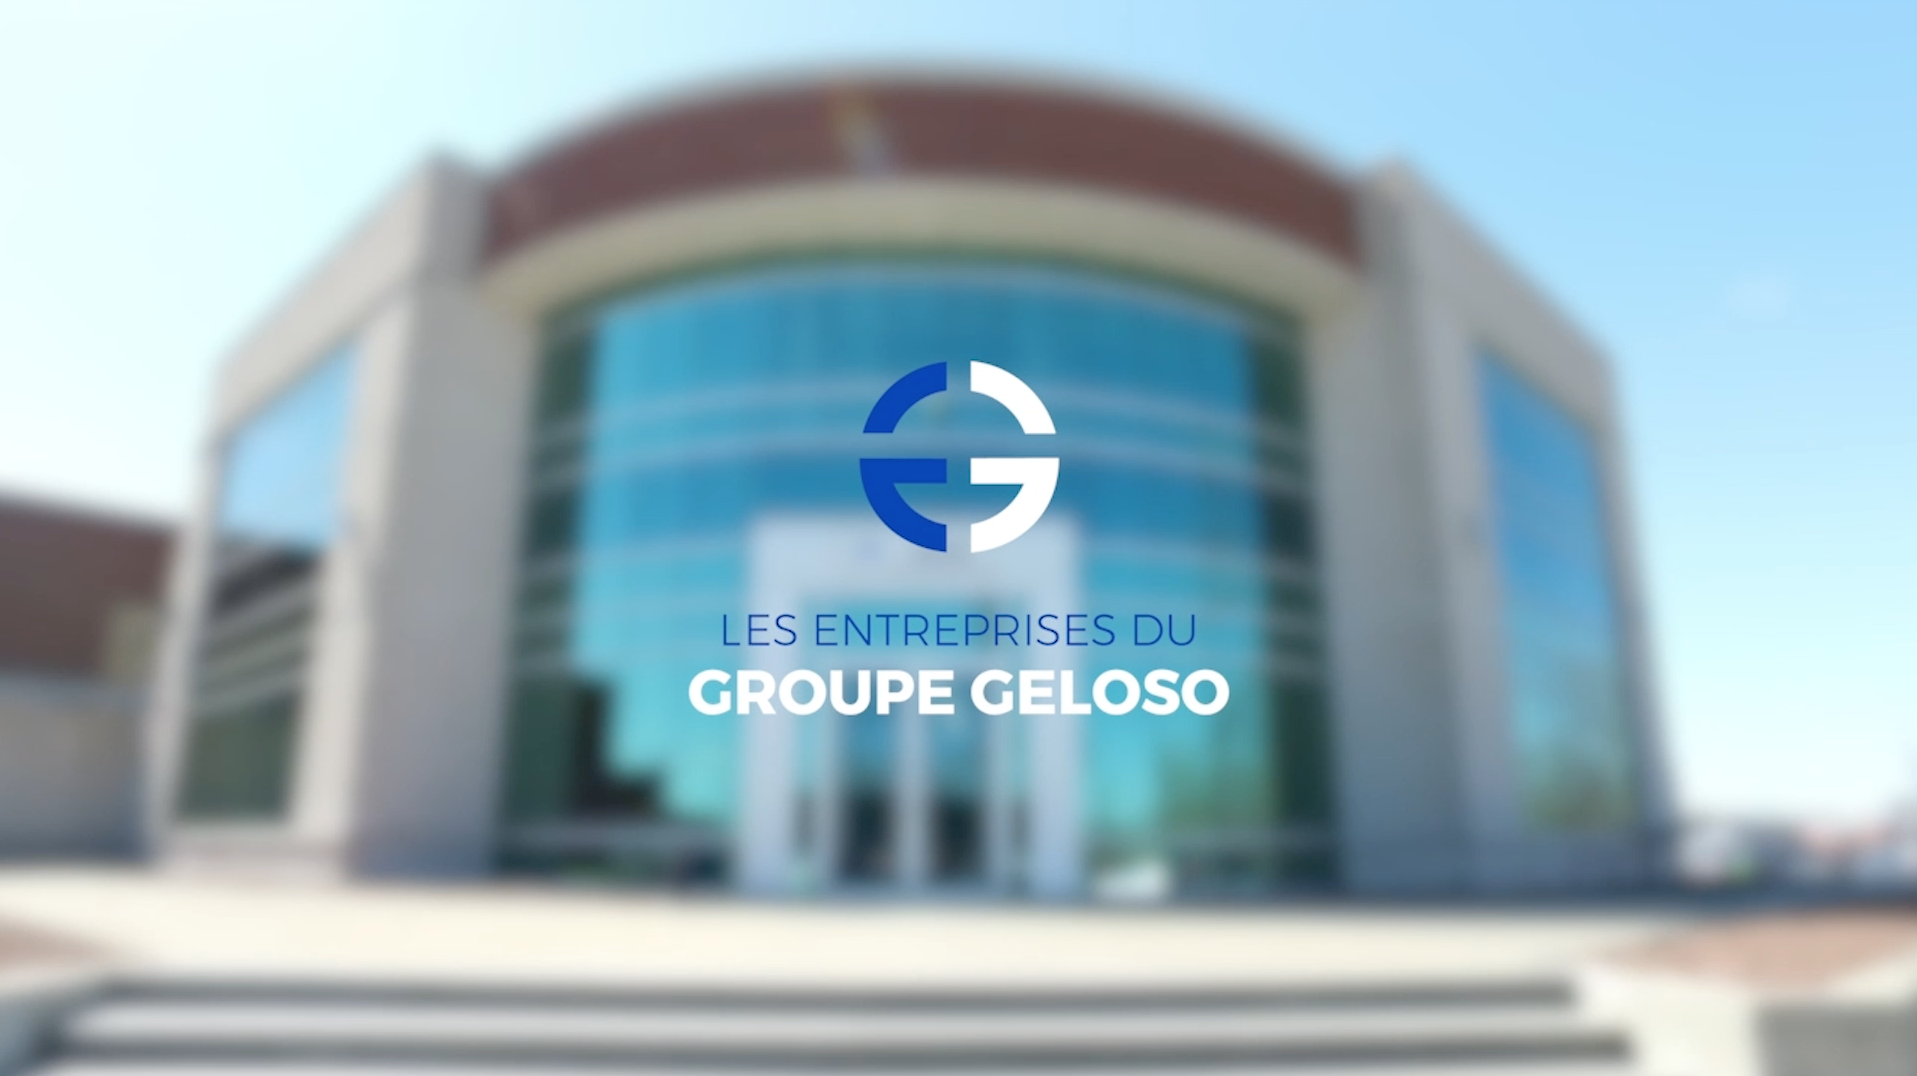 Covid-19 – The Geloso Group of Companies remain operational